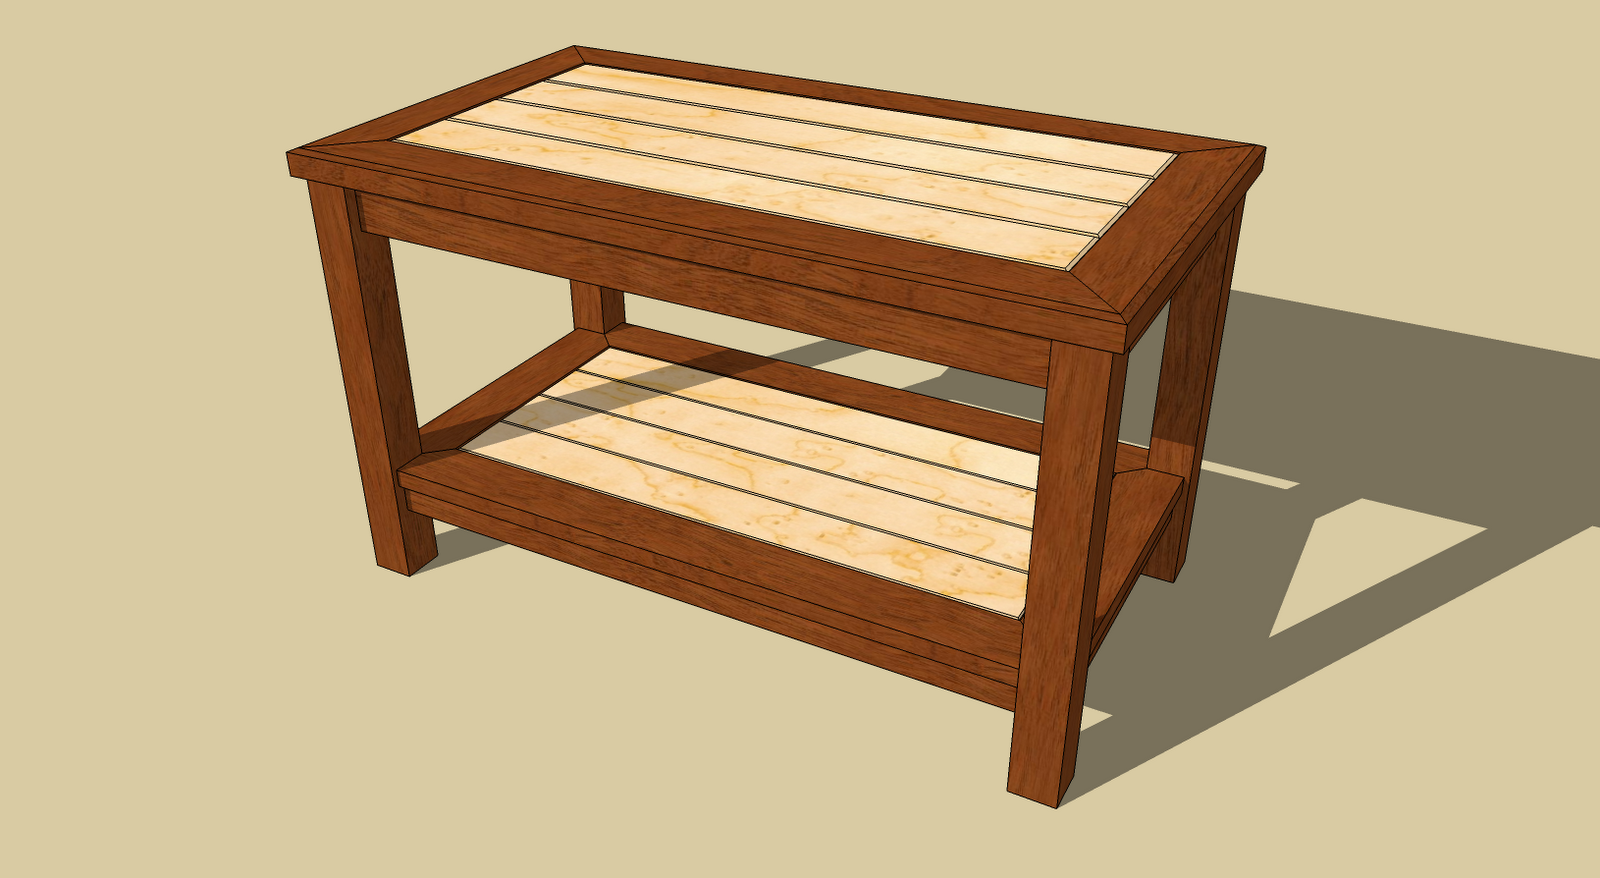 the woodworking plans i create are getting harder and harder to finish